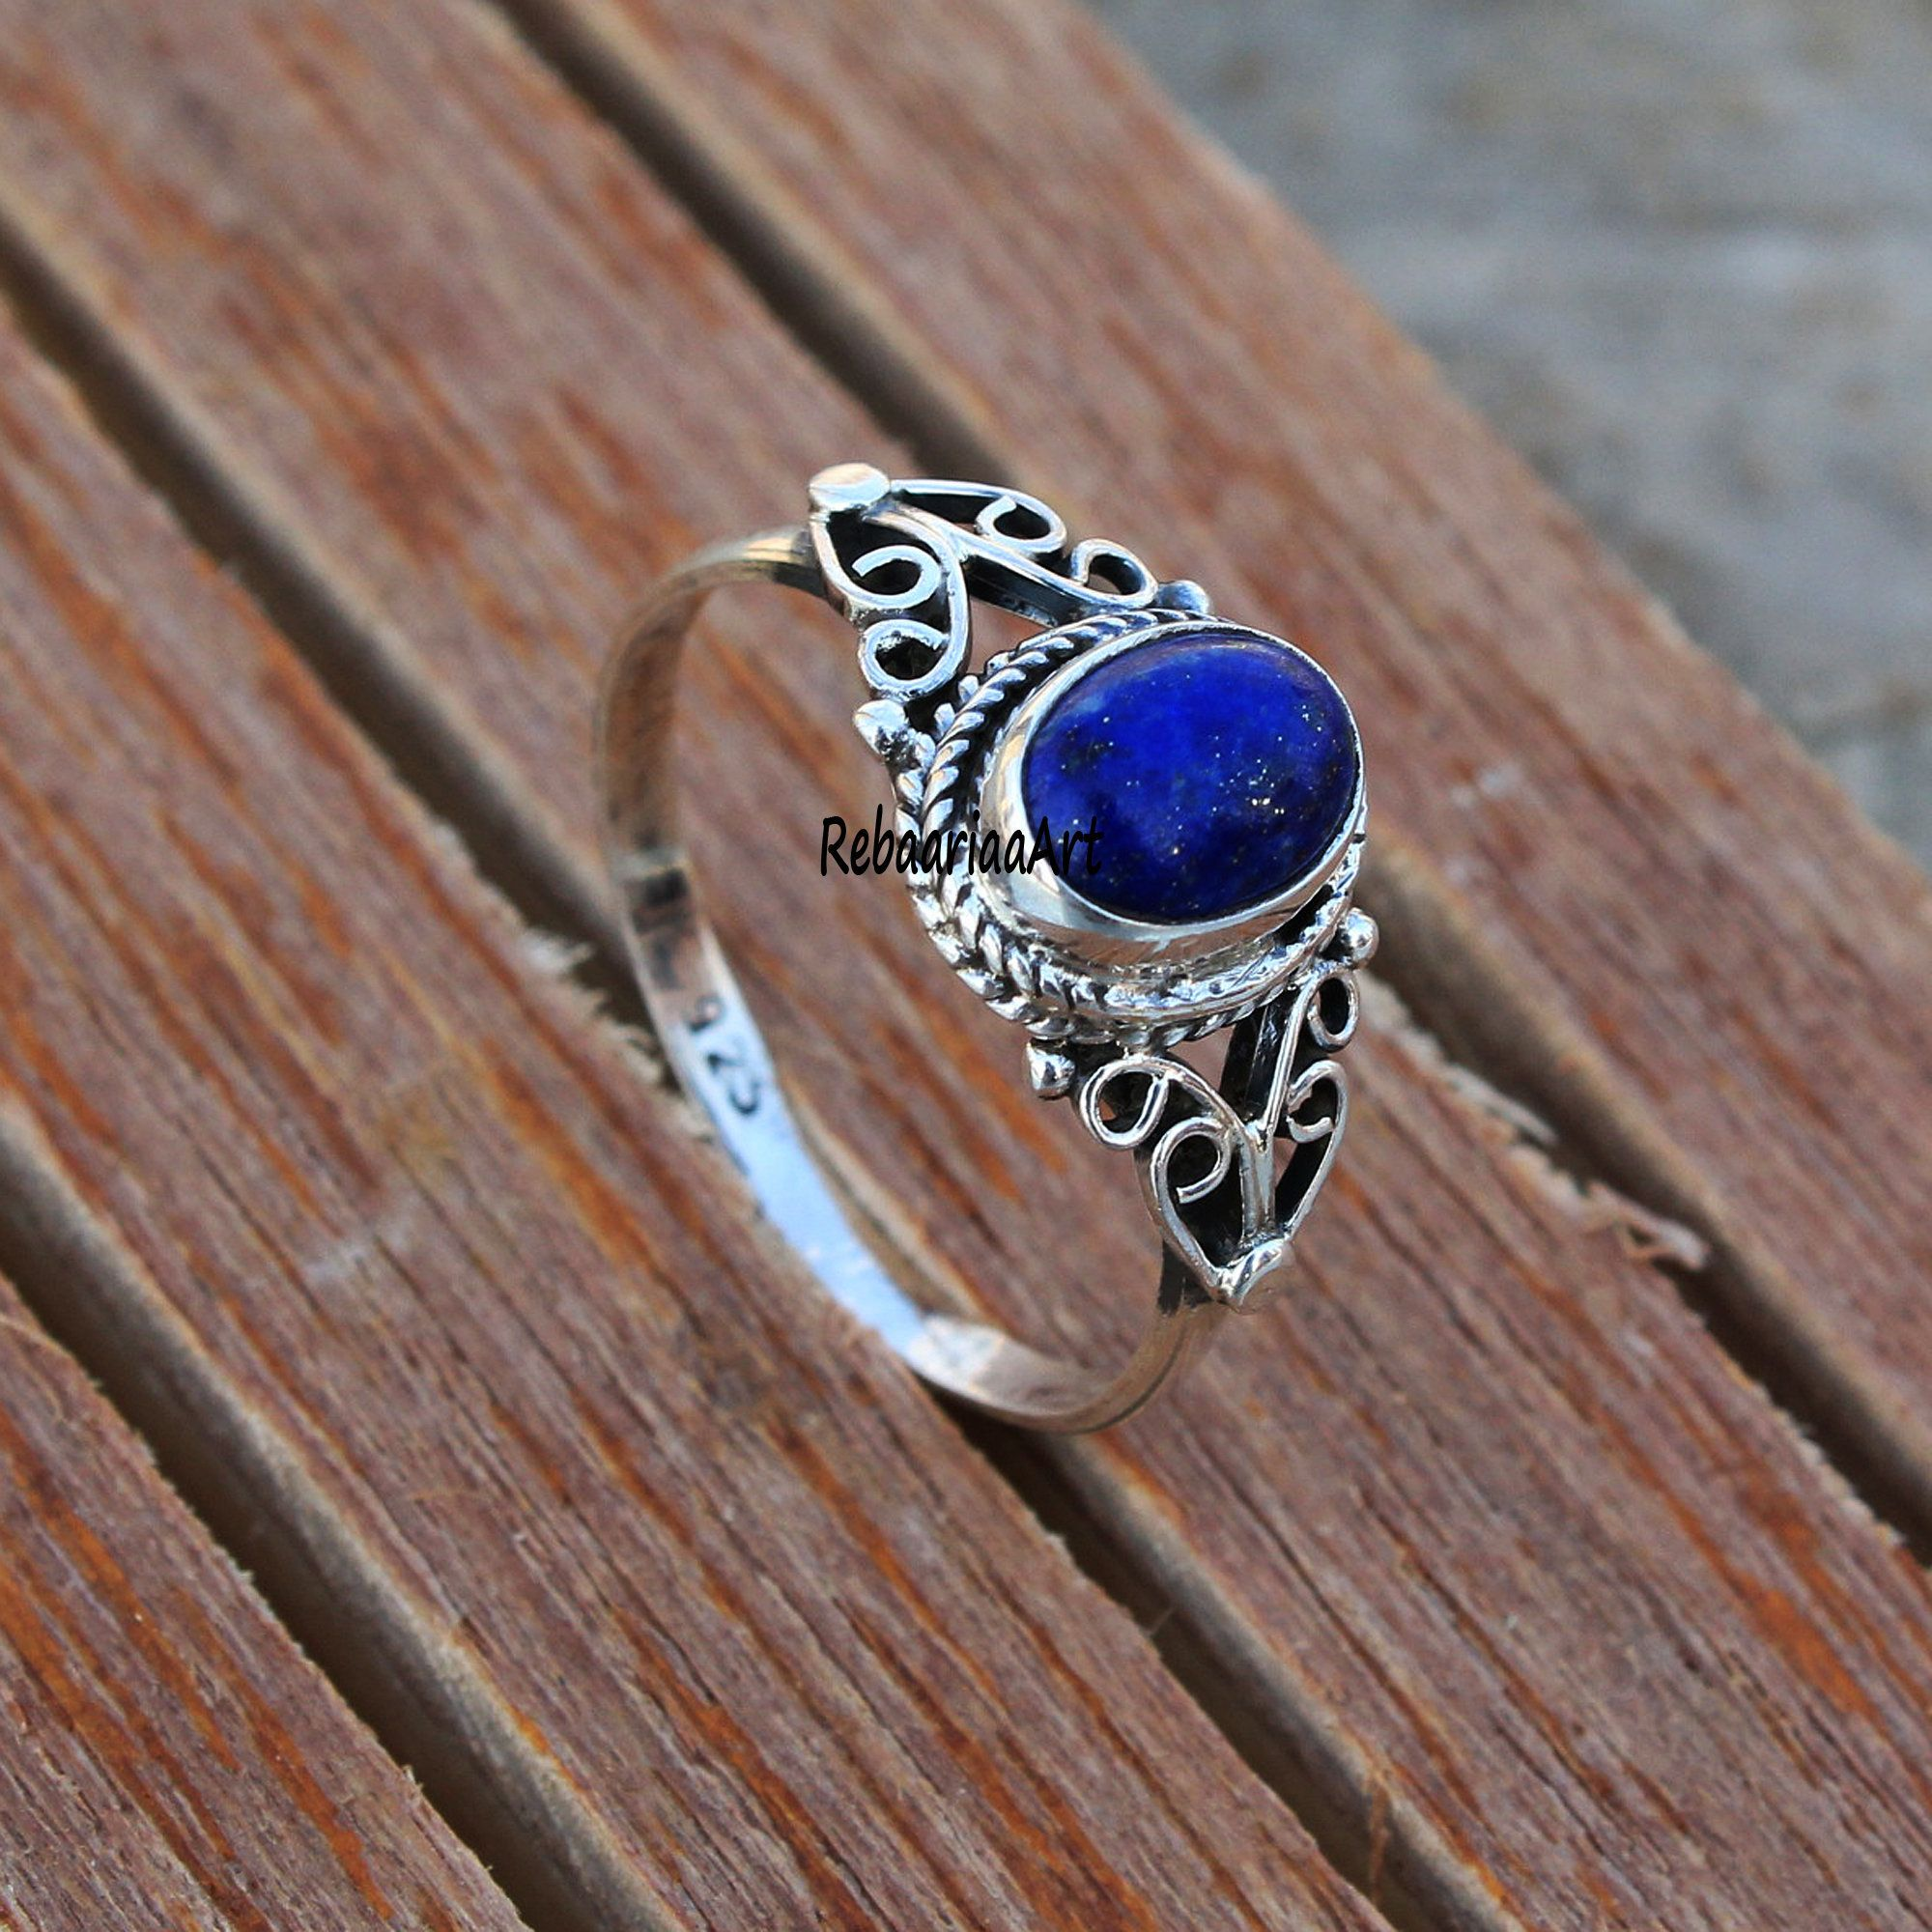 Lapis Lazuli Ring Sterling Silver Ring Blue Stone Ring Lapis Cabochon Gemstone Ring Birthday gifts Artisan Silver Jewelry Gift for her